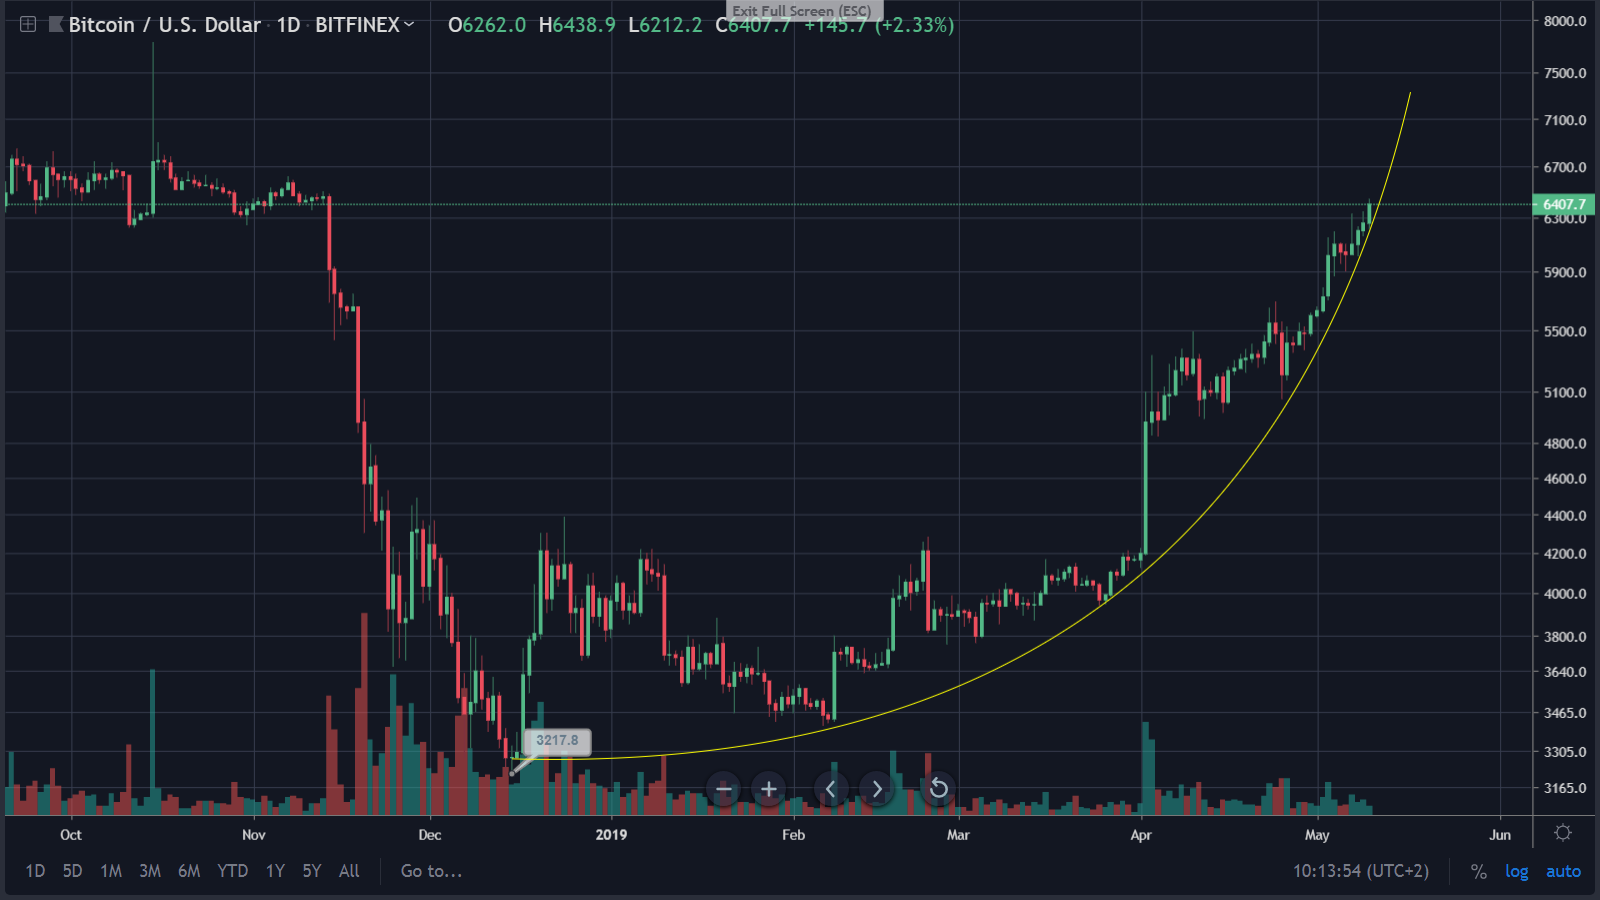 btc 6400 - Bitcoin Enters Officially In The Optimism Phase